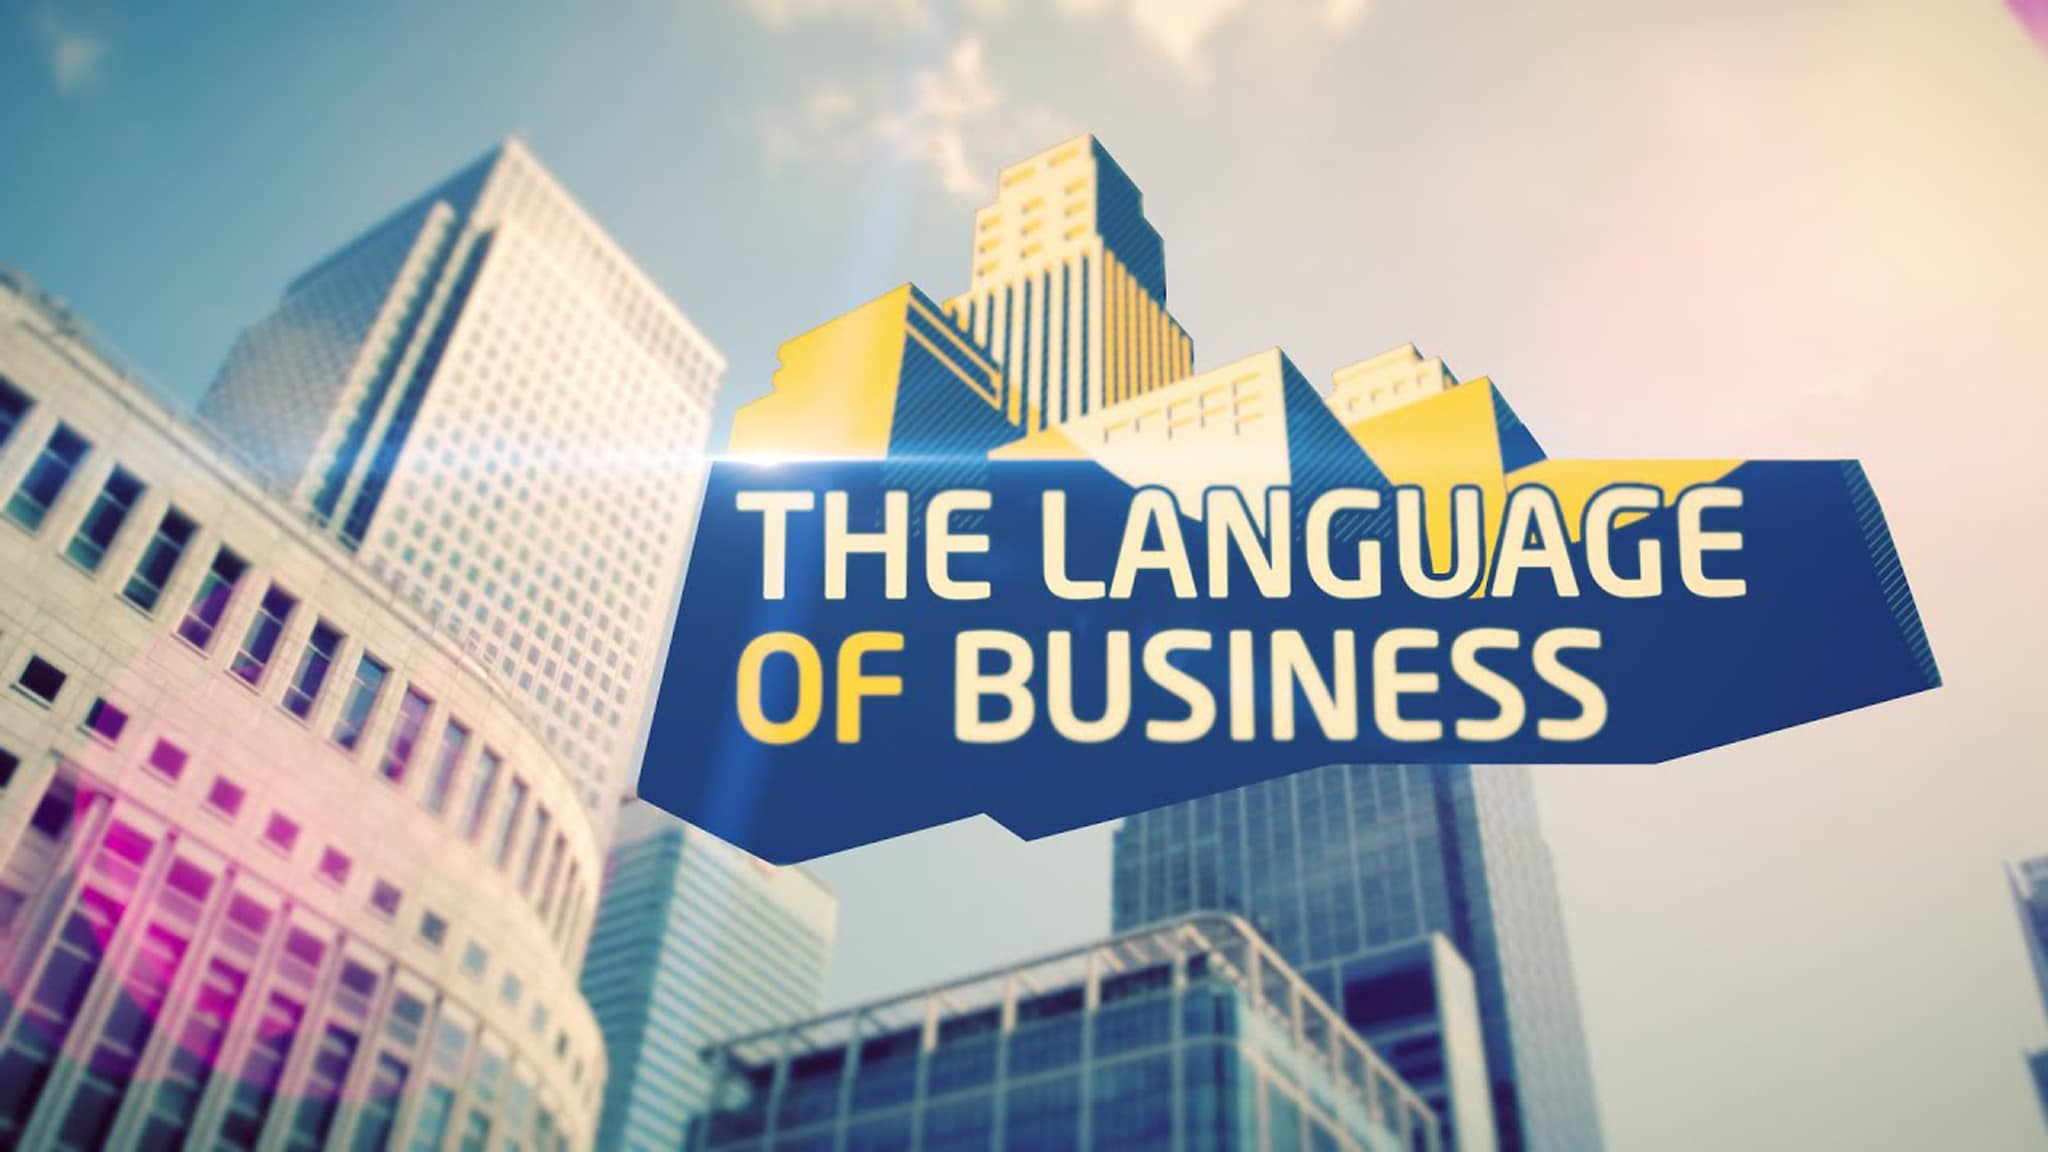 Rai Scuola The Language of Business episodio 11 Replica